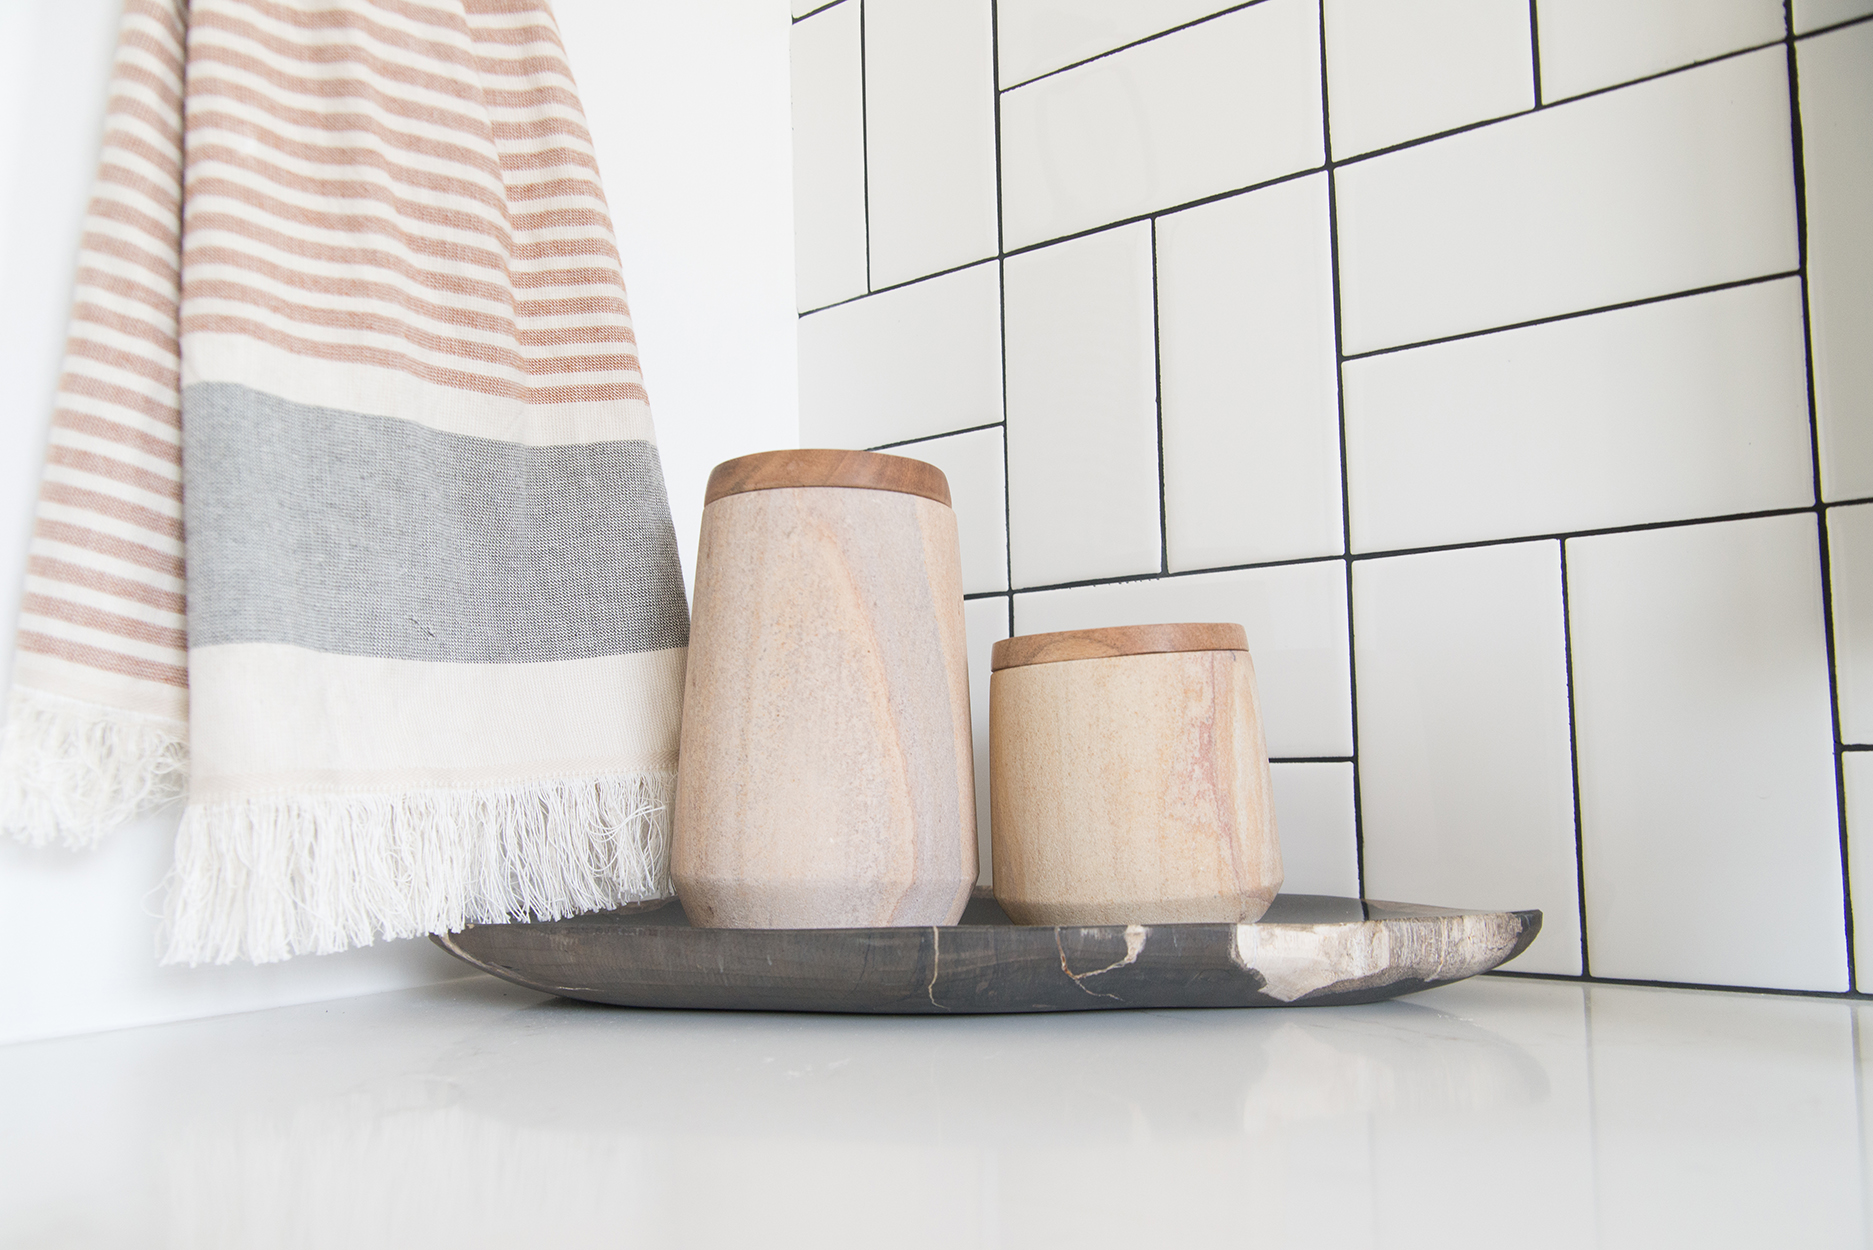 white tiled wall, a towel hanging and a cup and toothbrush holder